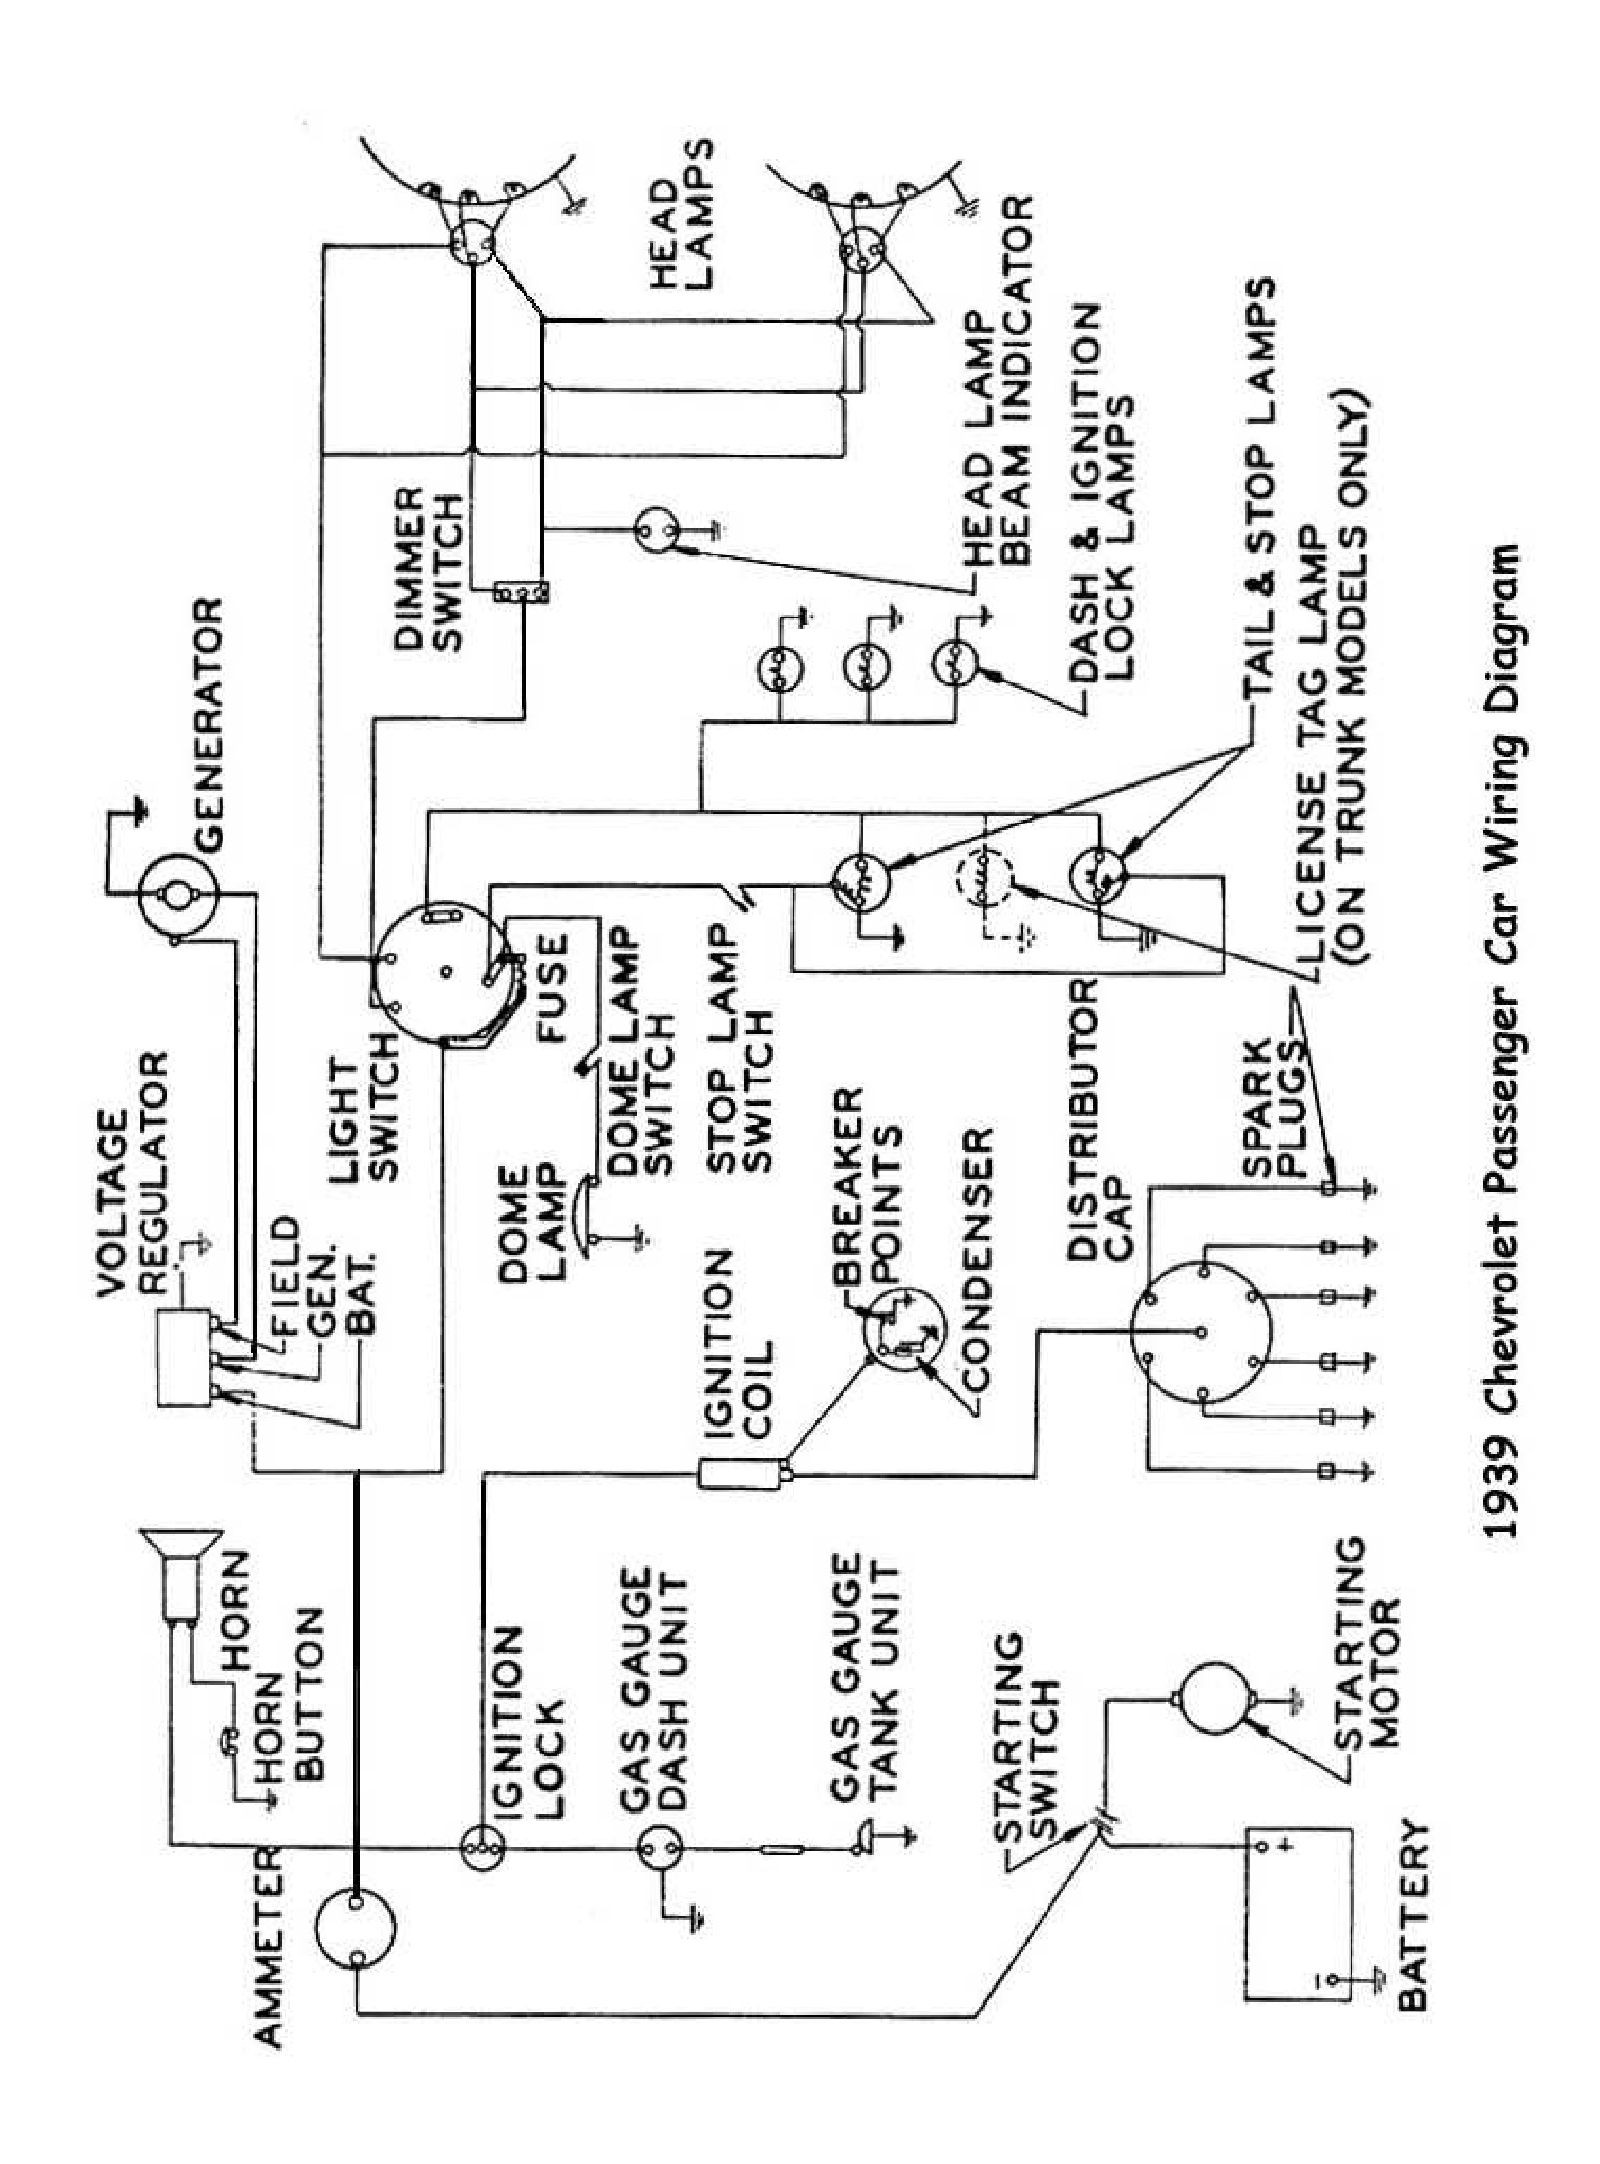 Oracle Rac Architecture Diagram besides 10yj940 in addition Ac Energy Sources Air Conditioning together with DIY Shore Power together with 05018702AA. on remote start components